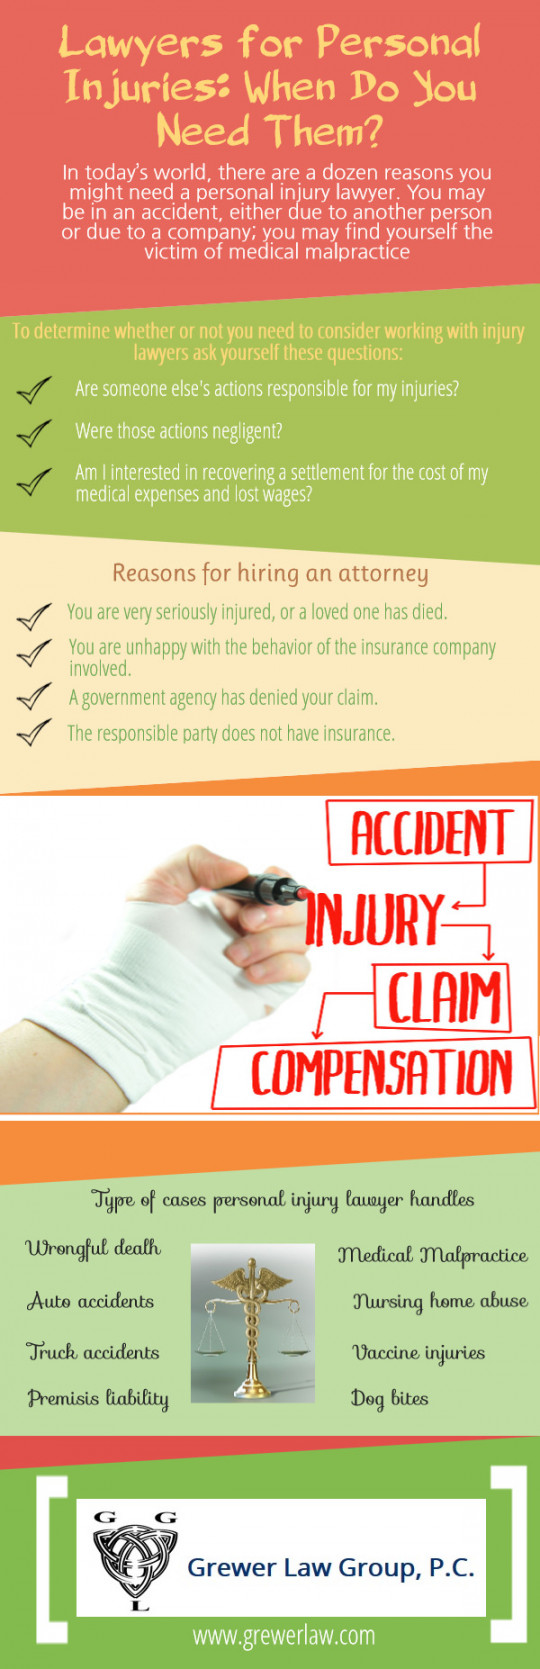 All about personal injury lawyers - When do you need them?